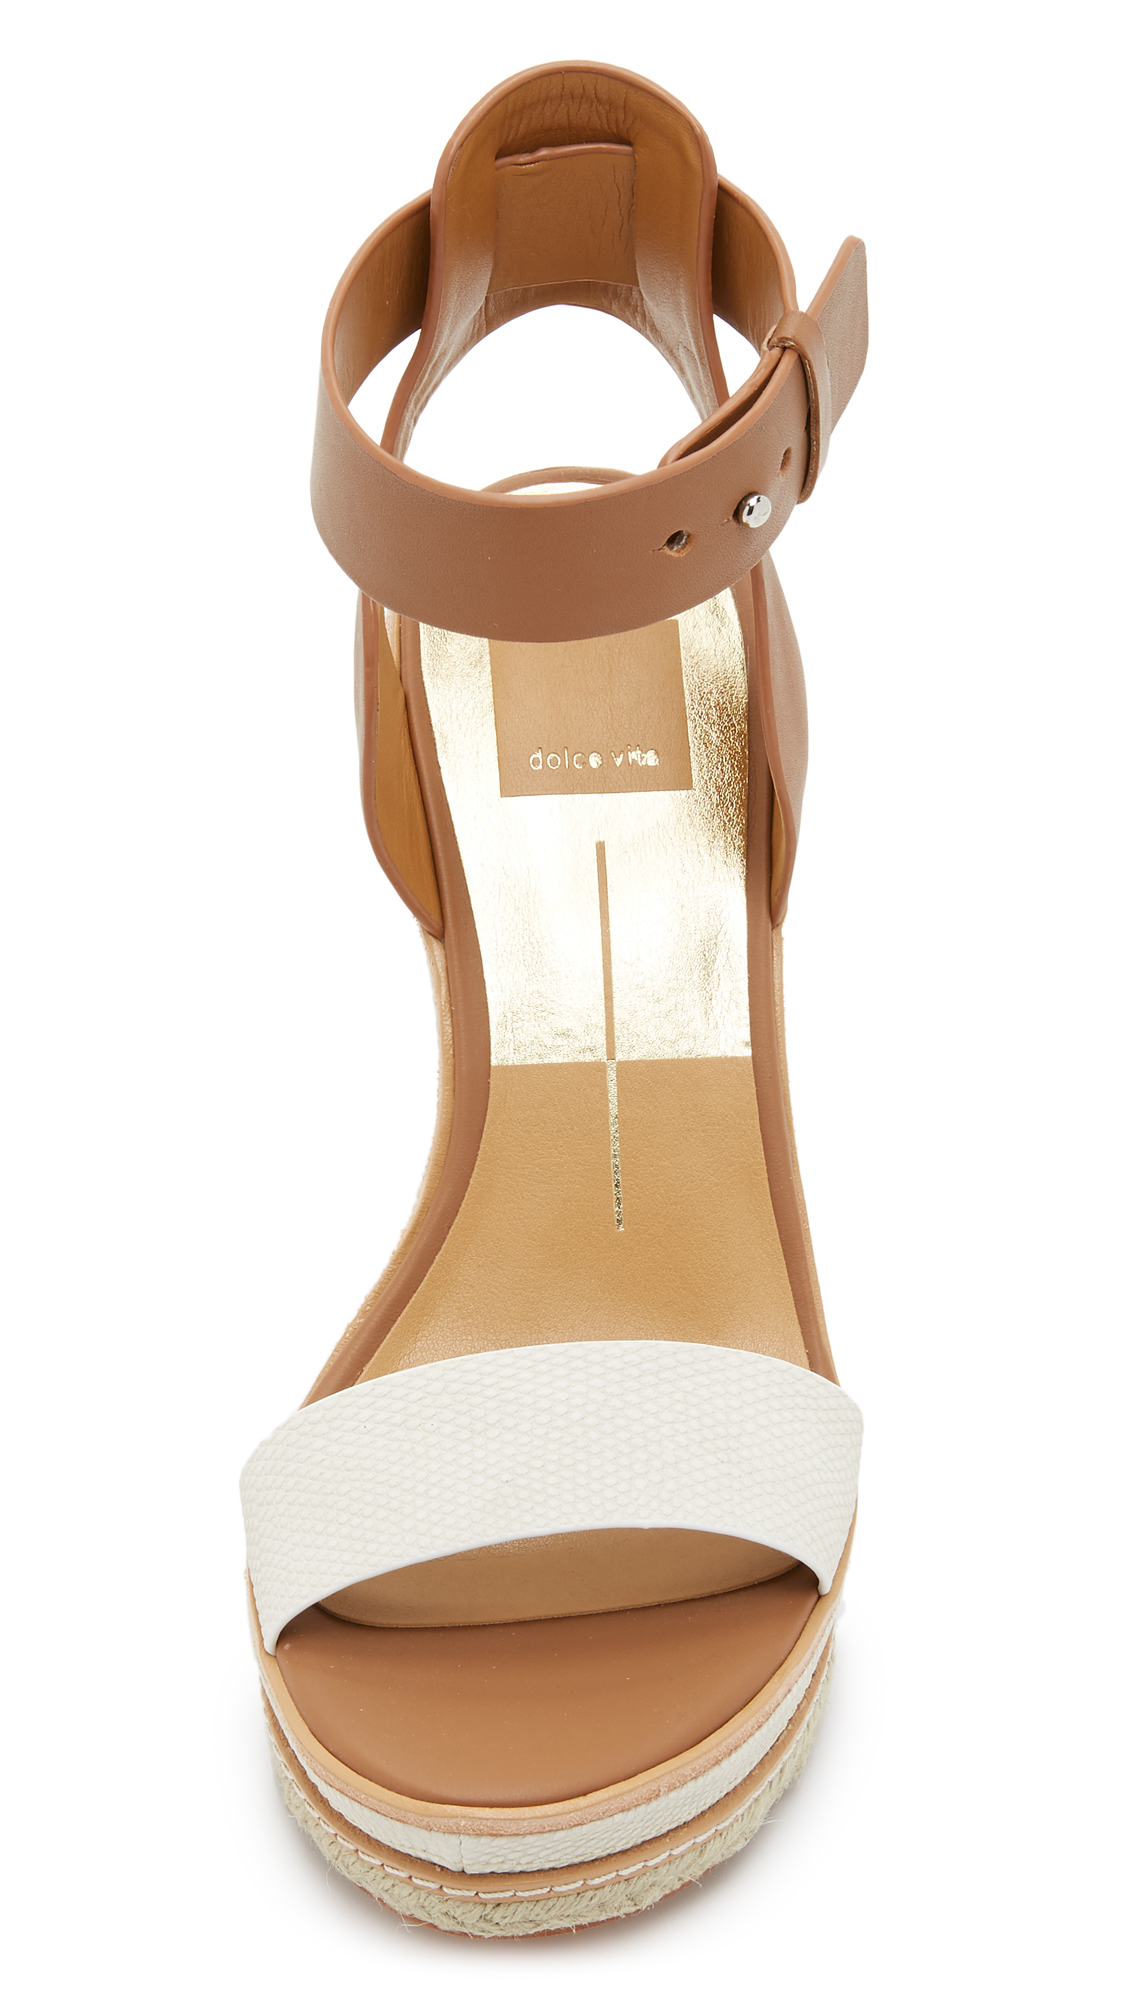 cce2e024559 Lyst - Dolce Vita Heath Wedge Sandals in Brown